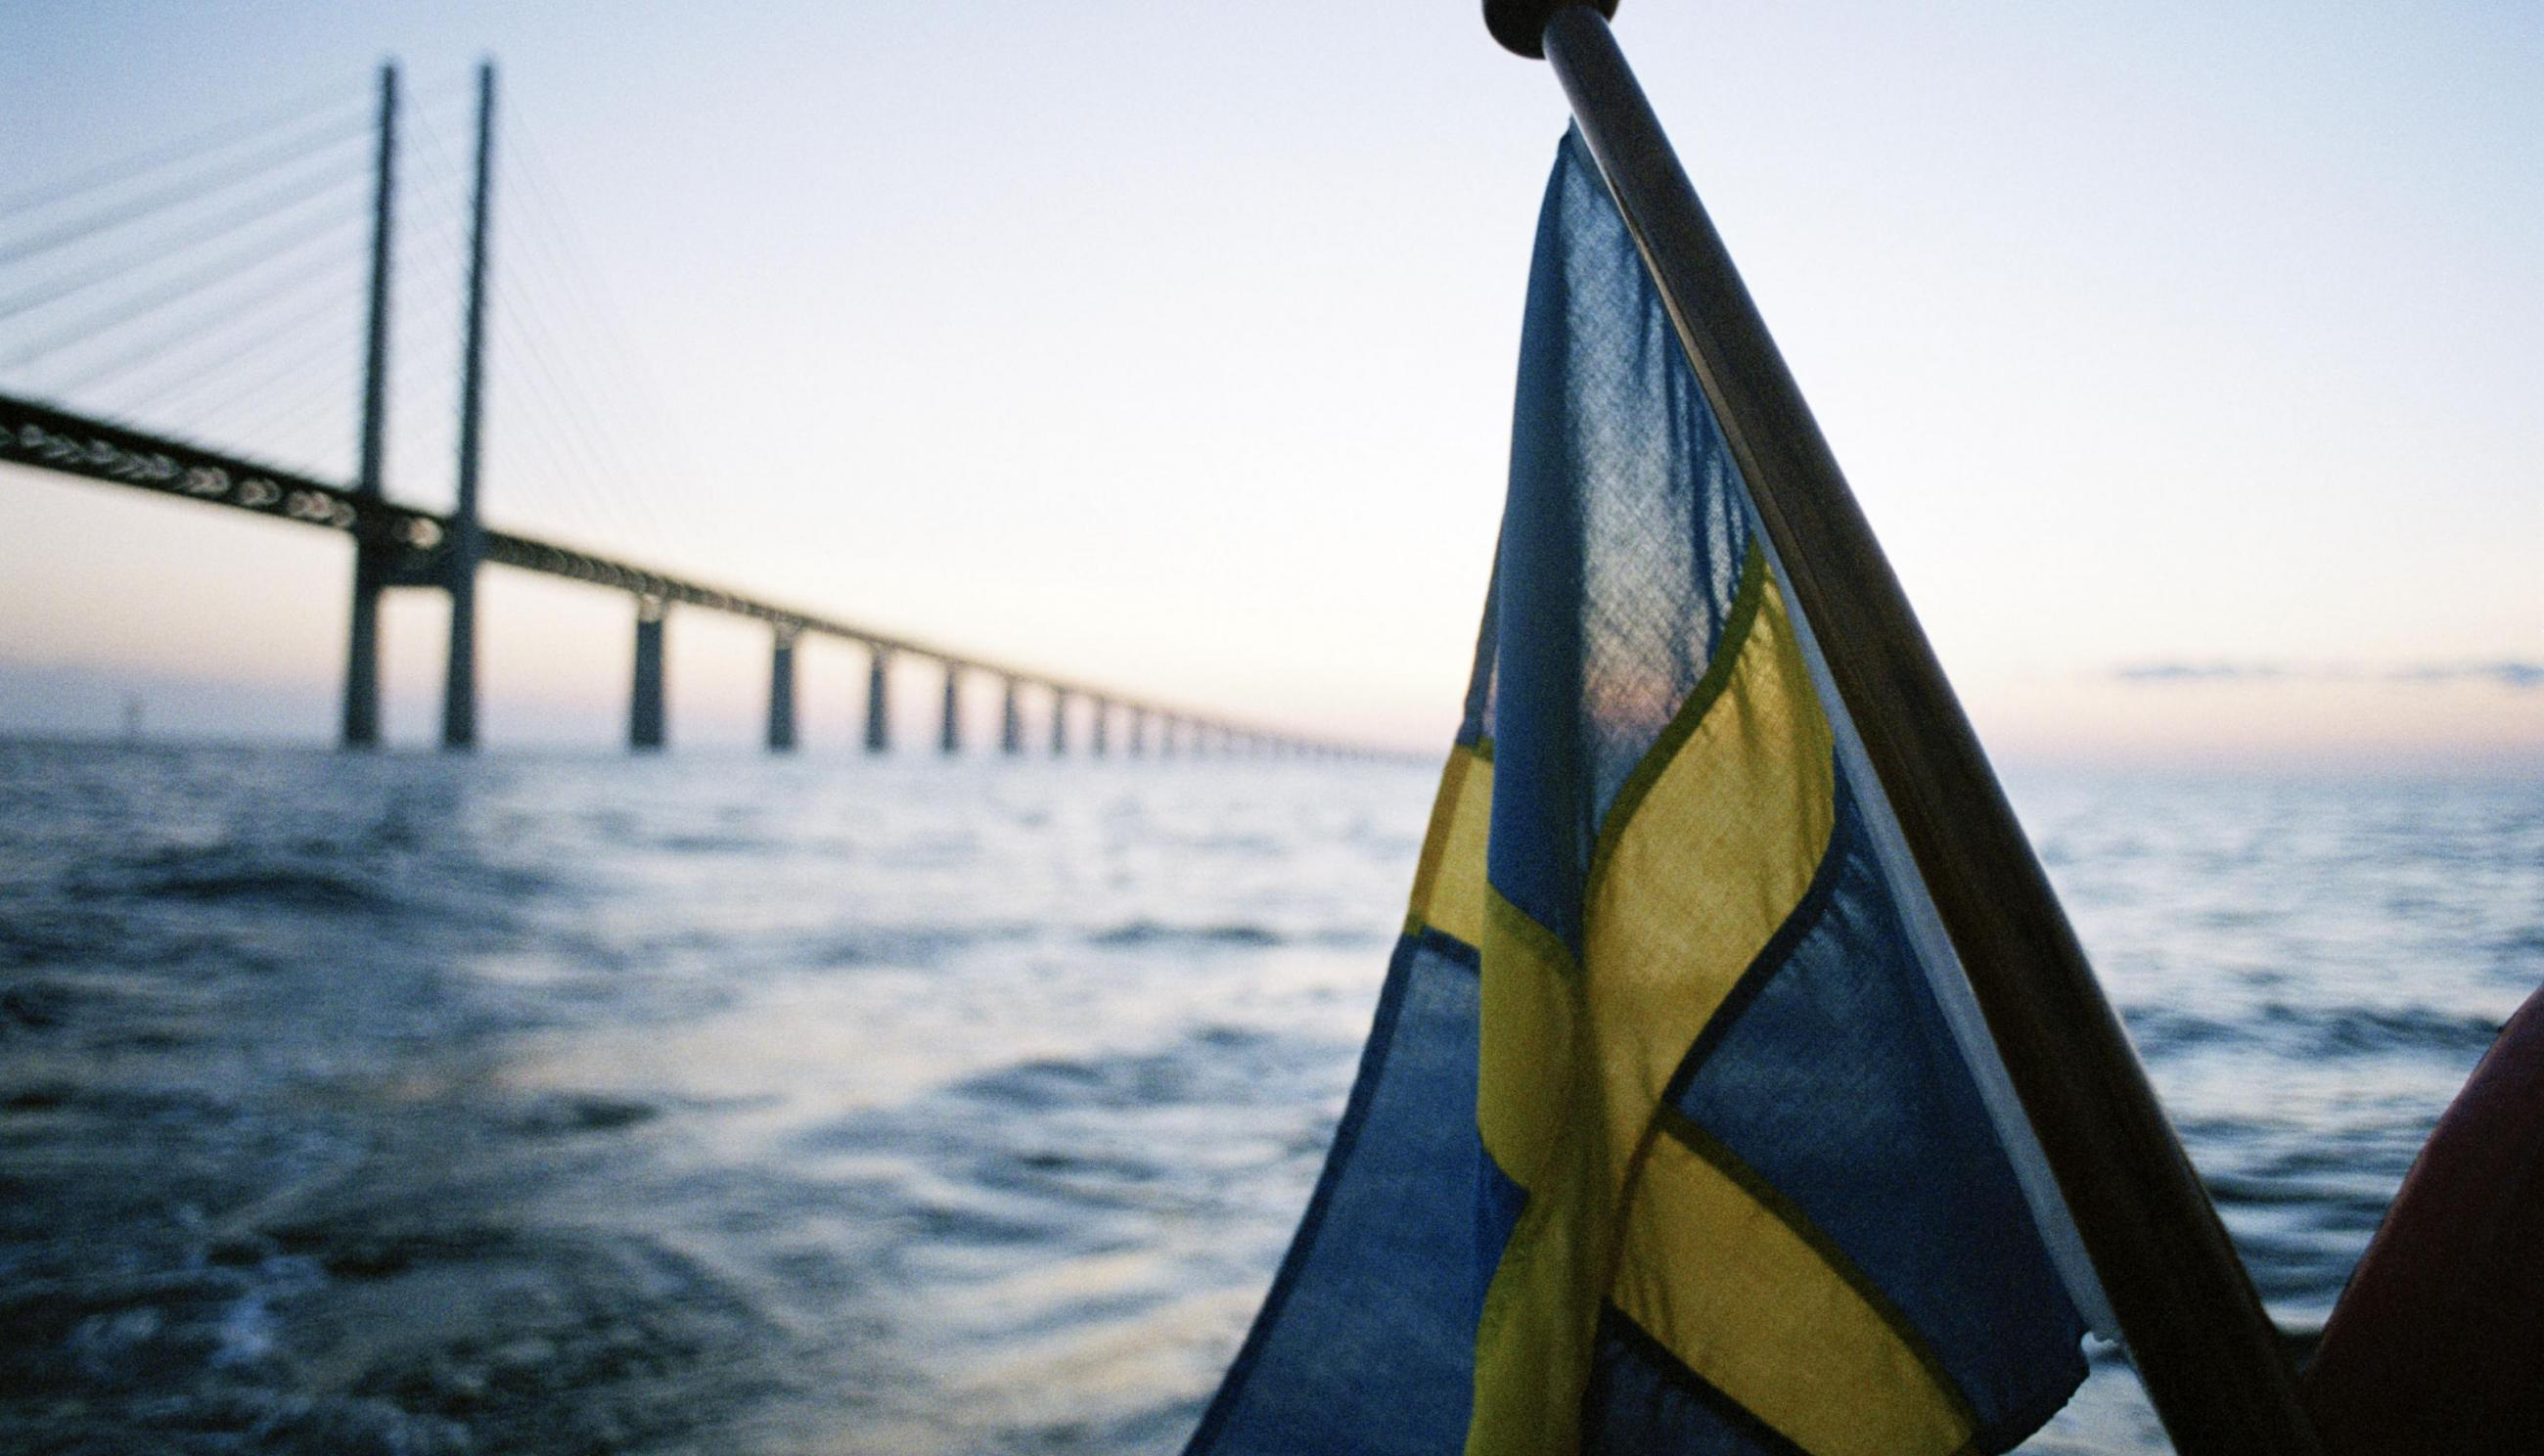 Swedish flag by Öresundsbron © Lasse Davidsson